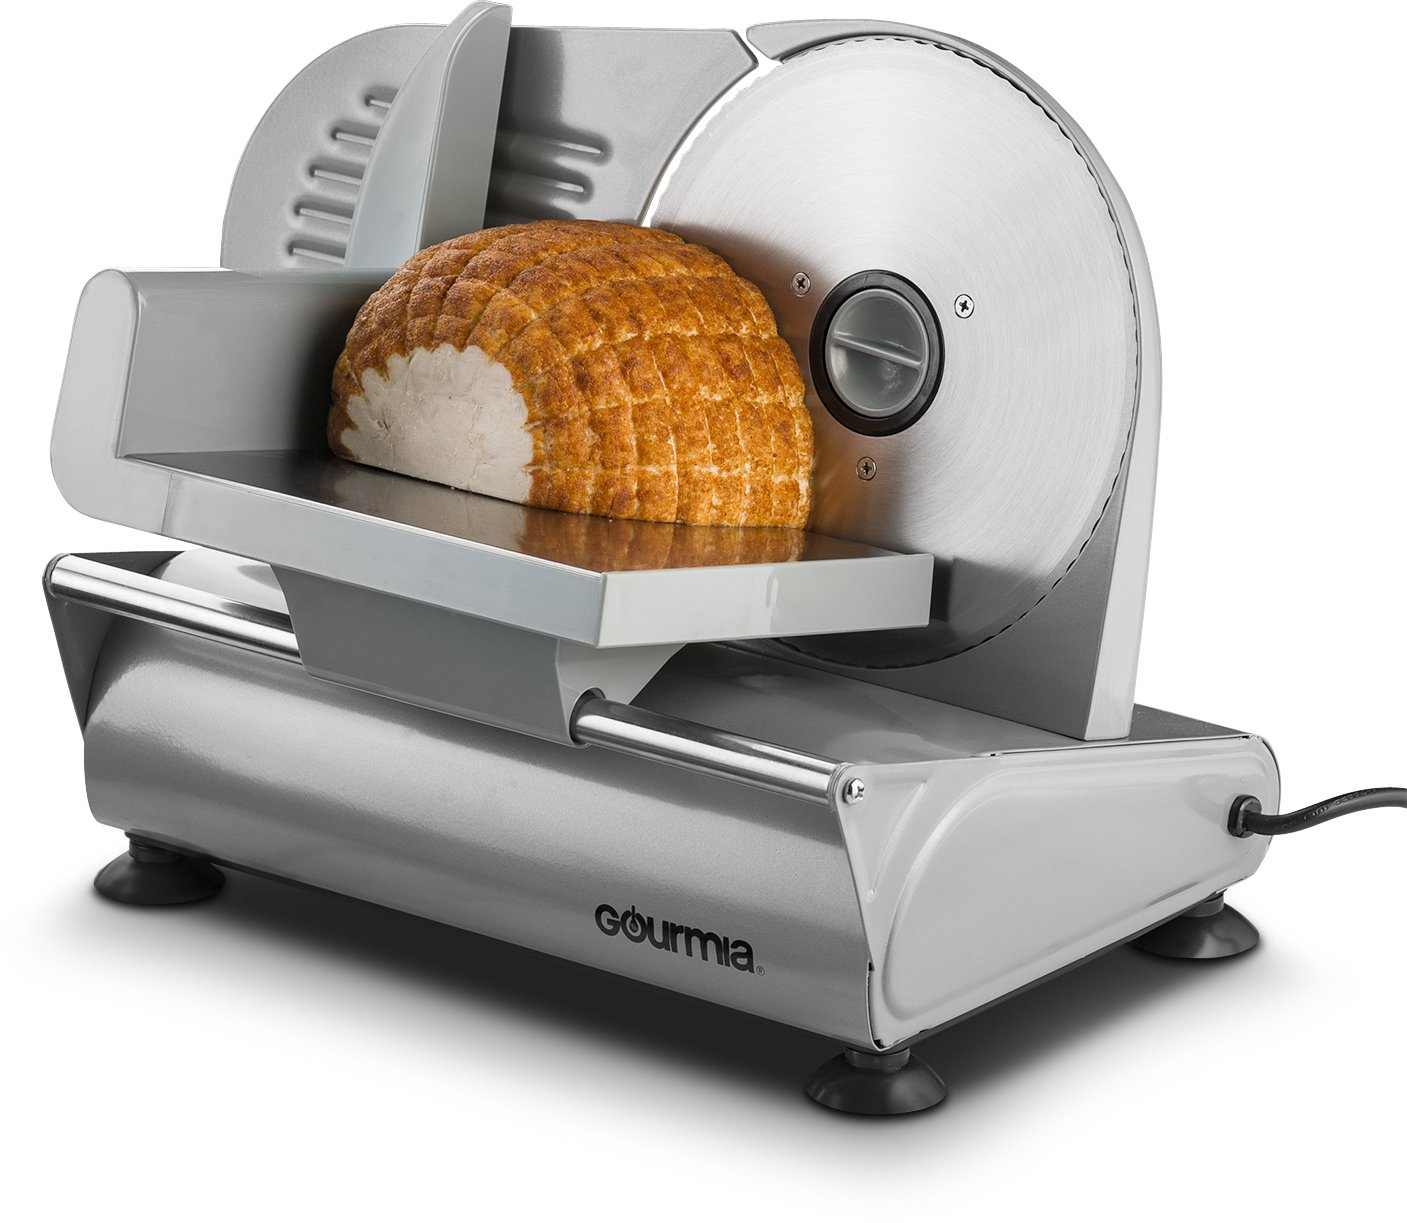 Gourmia GFS-700 Counterman Professional Electric Power Food & Meat Slicer, 7.5'', Silver